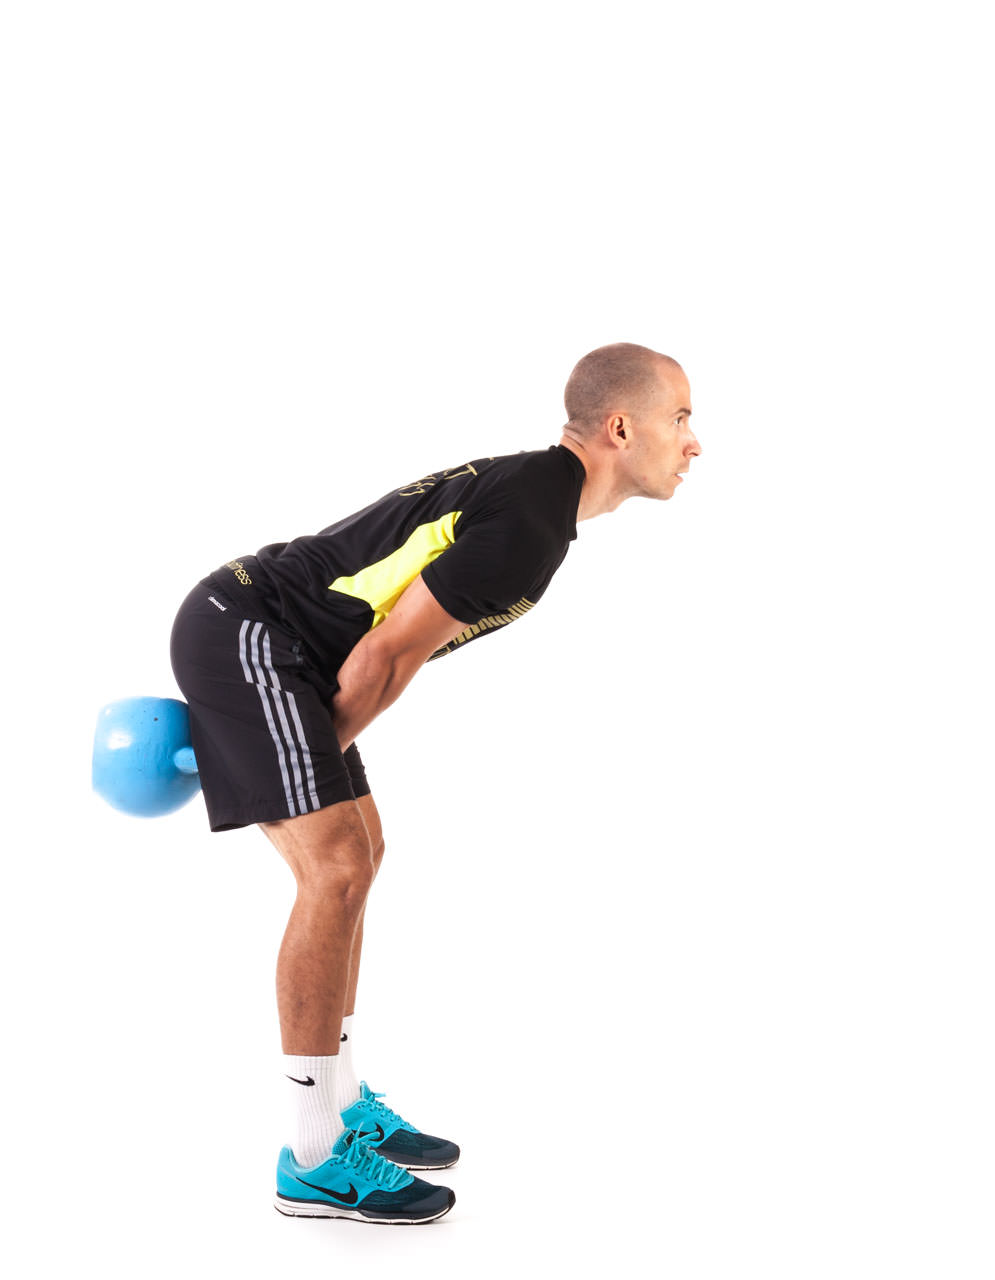 Two-Arm Kettlebell Swing frame #6